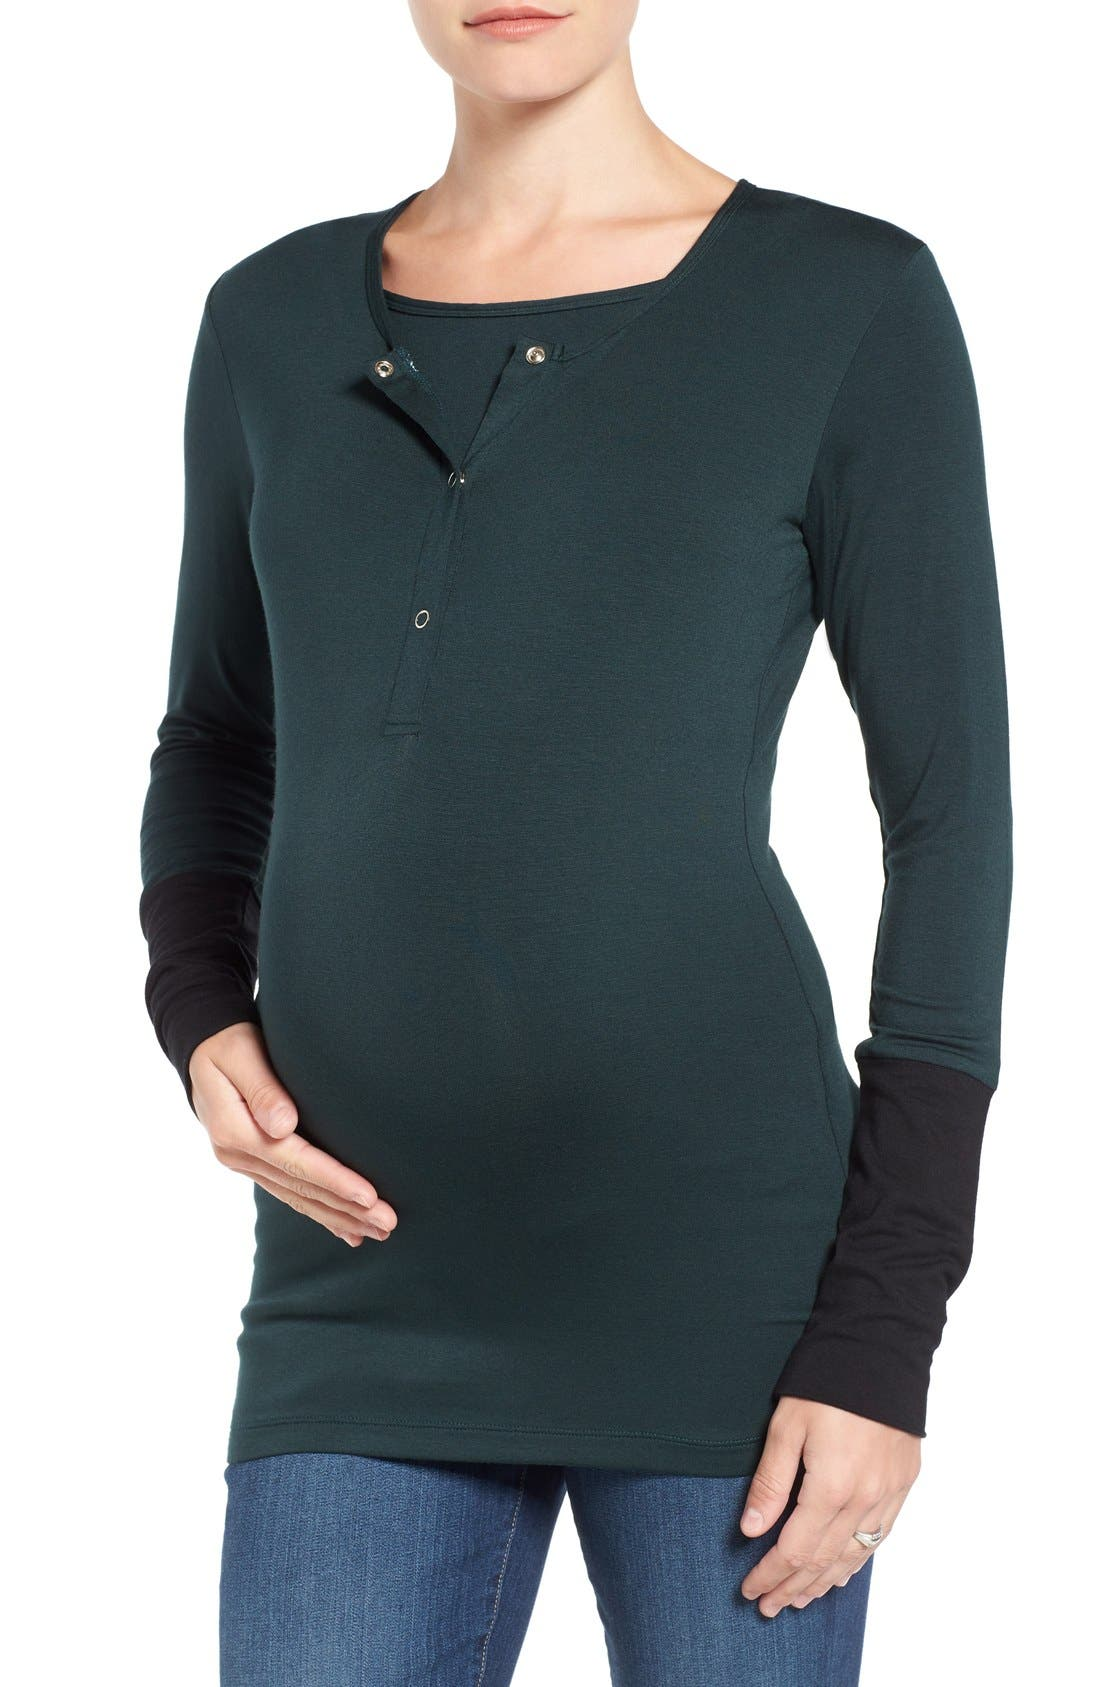 'Jenn' Maternity/Nursing Top,                             Main thumbnail 1, color,                             HUNTER W/ BLACK CUFF